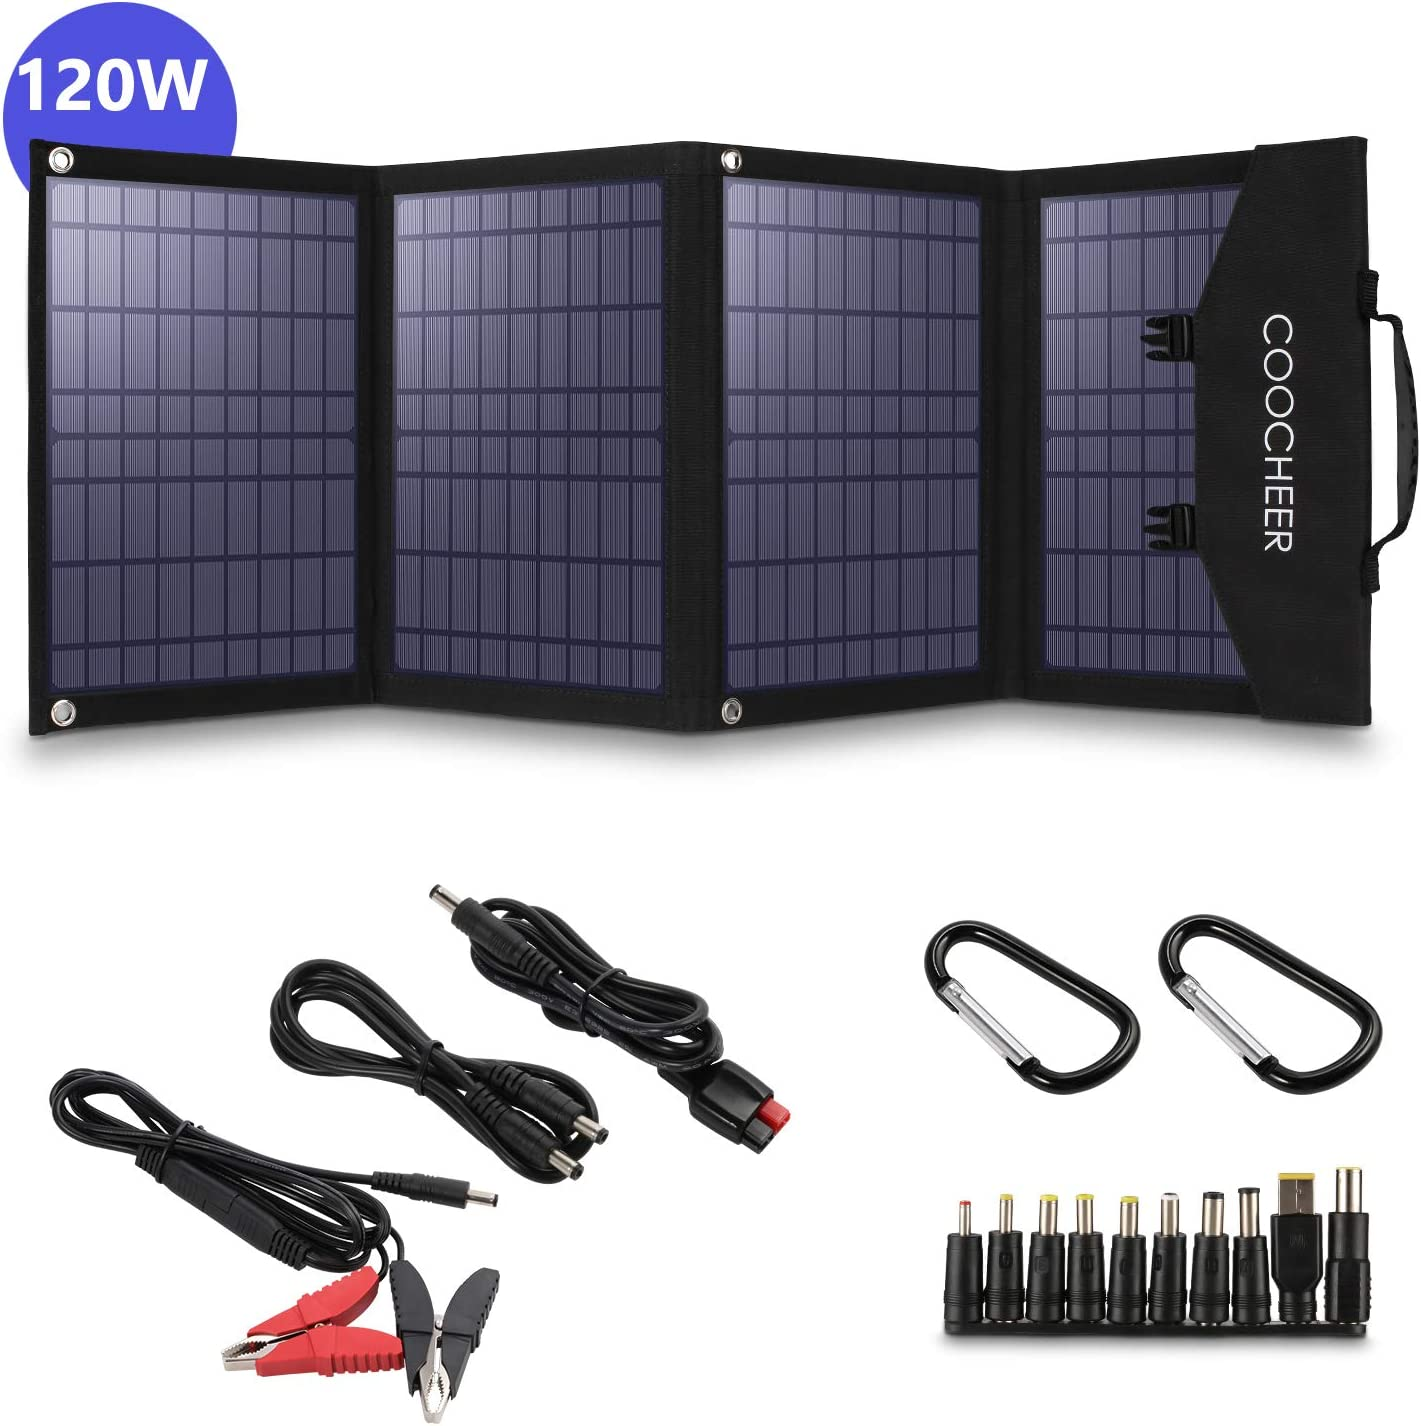 COOCHEER Solar Charger 120W Portable Solar Panel Foldable for Power Station Generator and Laptop Tablet GPS iPhone iPad Camera for Emergency Hurricane Home